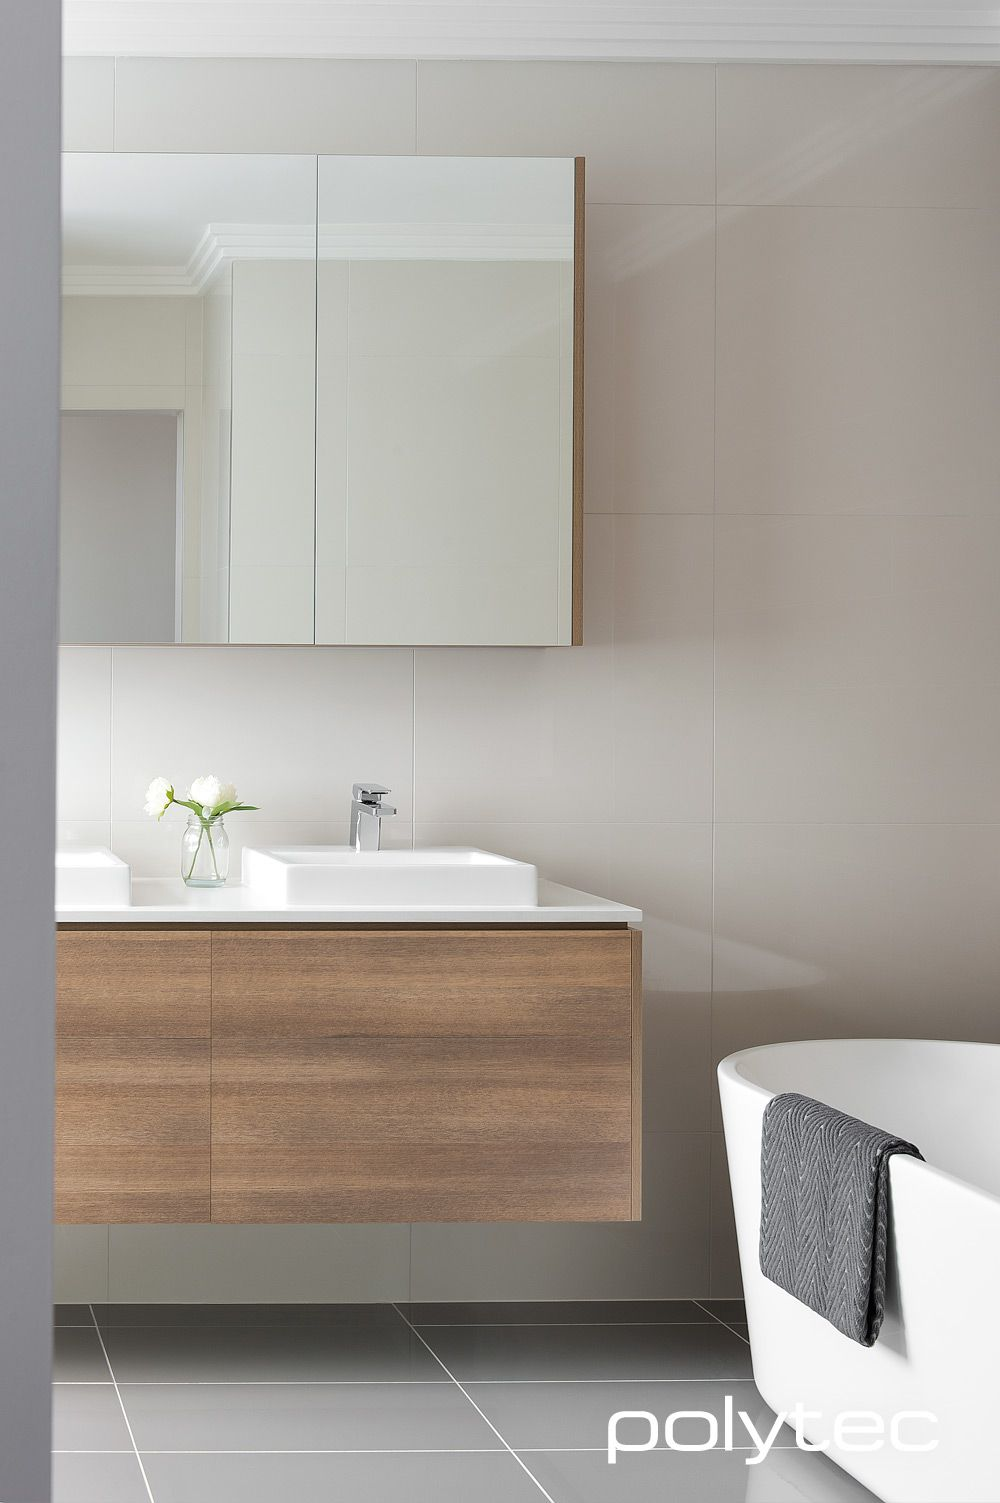 Sleek Looking Modern Bathroom Vanity In Polytec Ravine Sepia Oak Prepossessing Modern Bathroom Vanity Inspiration